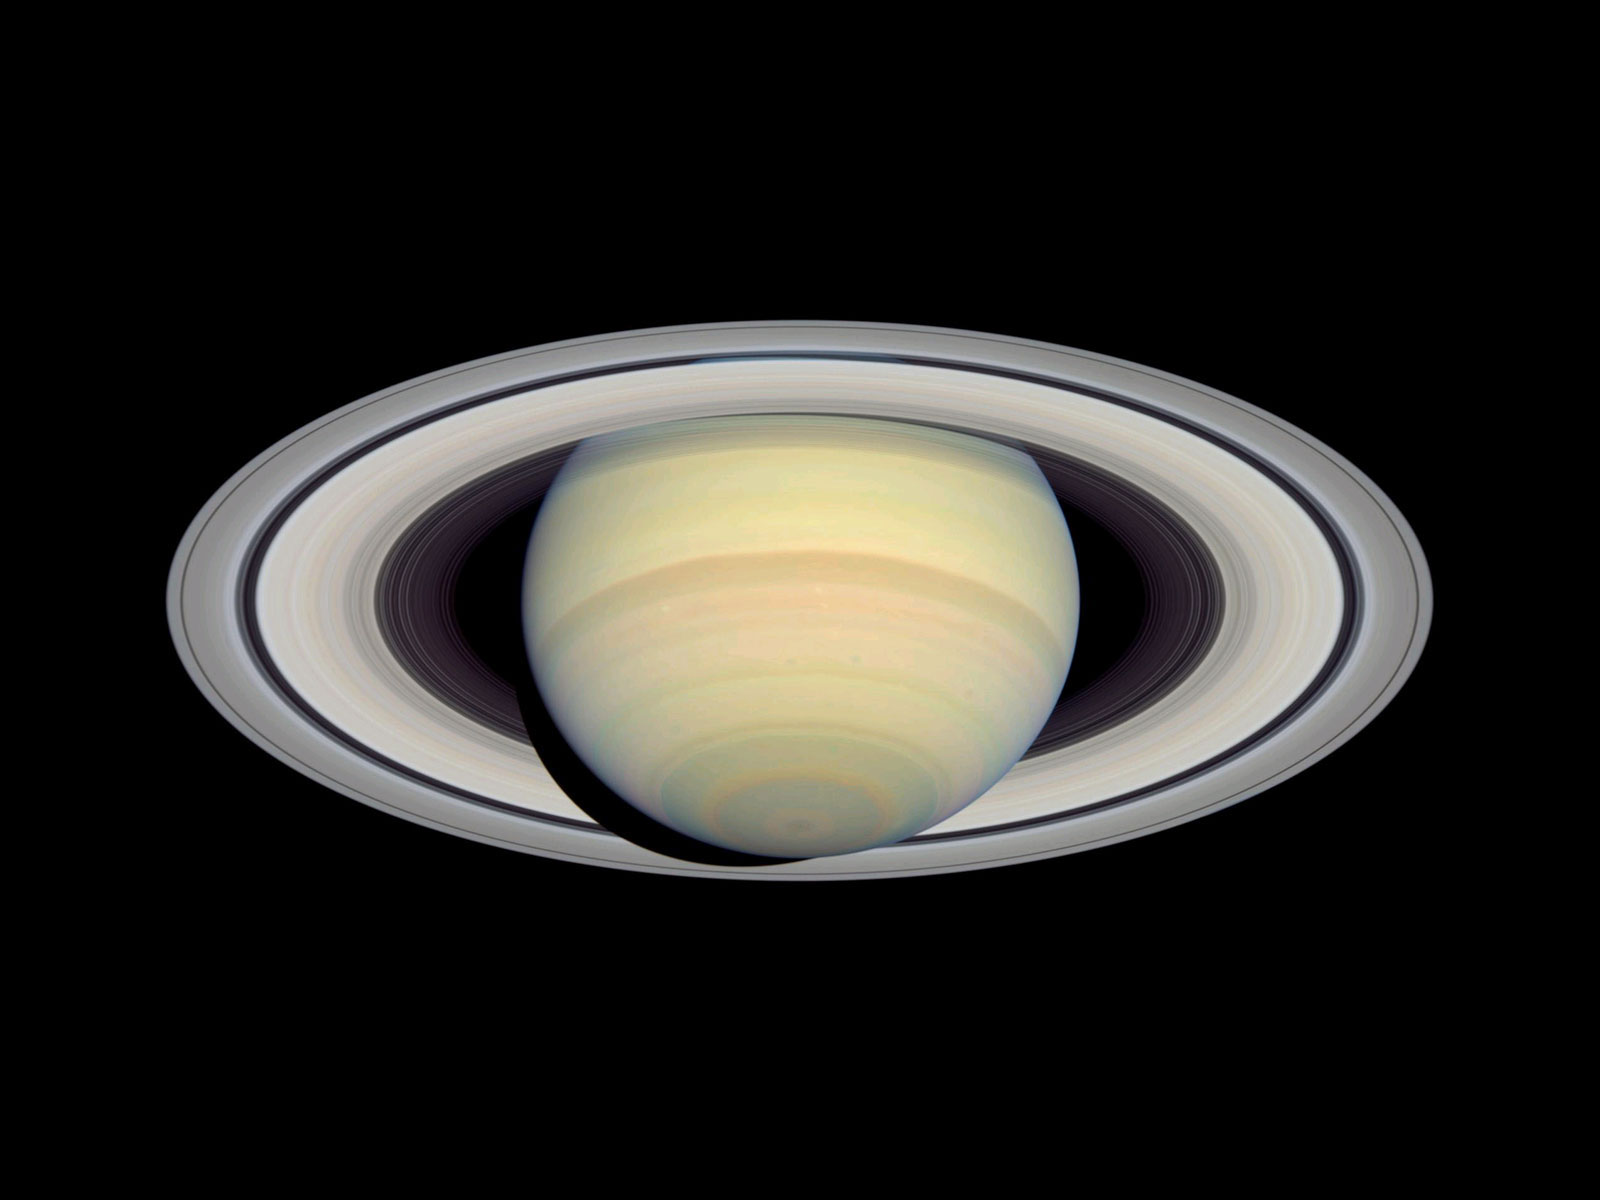 SATURN AND ITS BEAUTIFUL RING SYSTEM